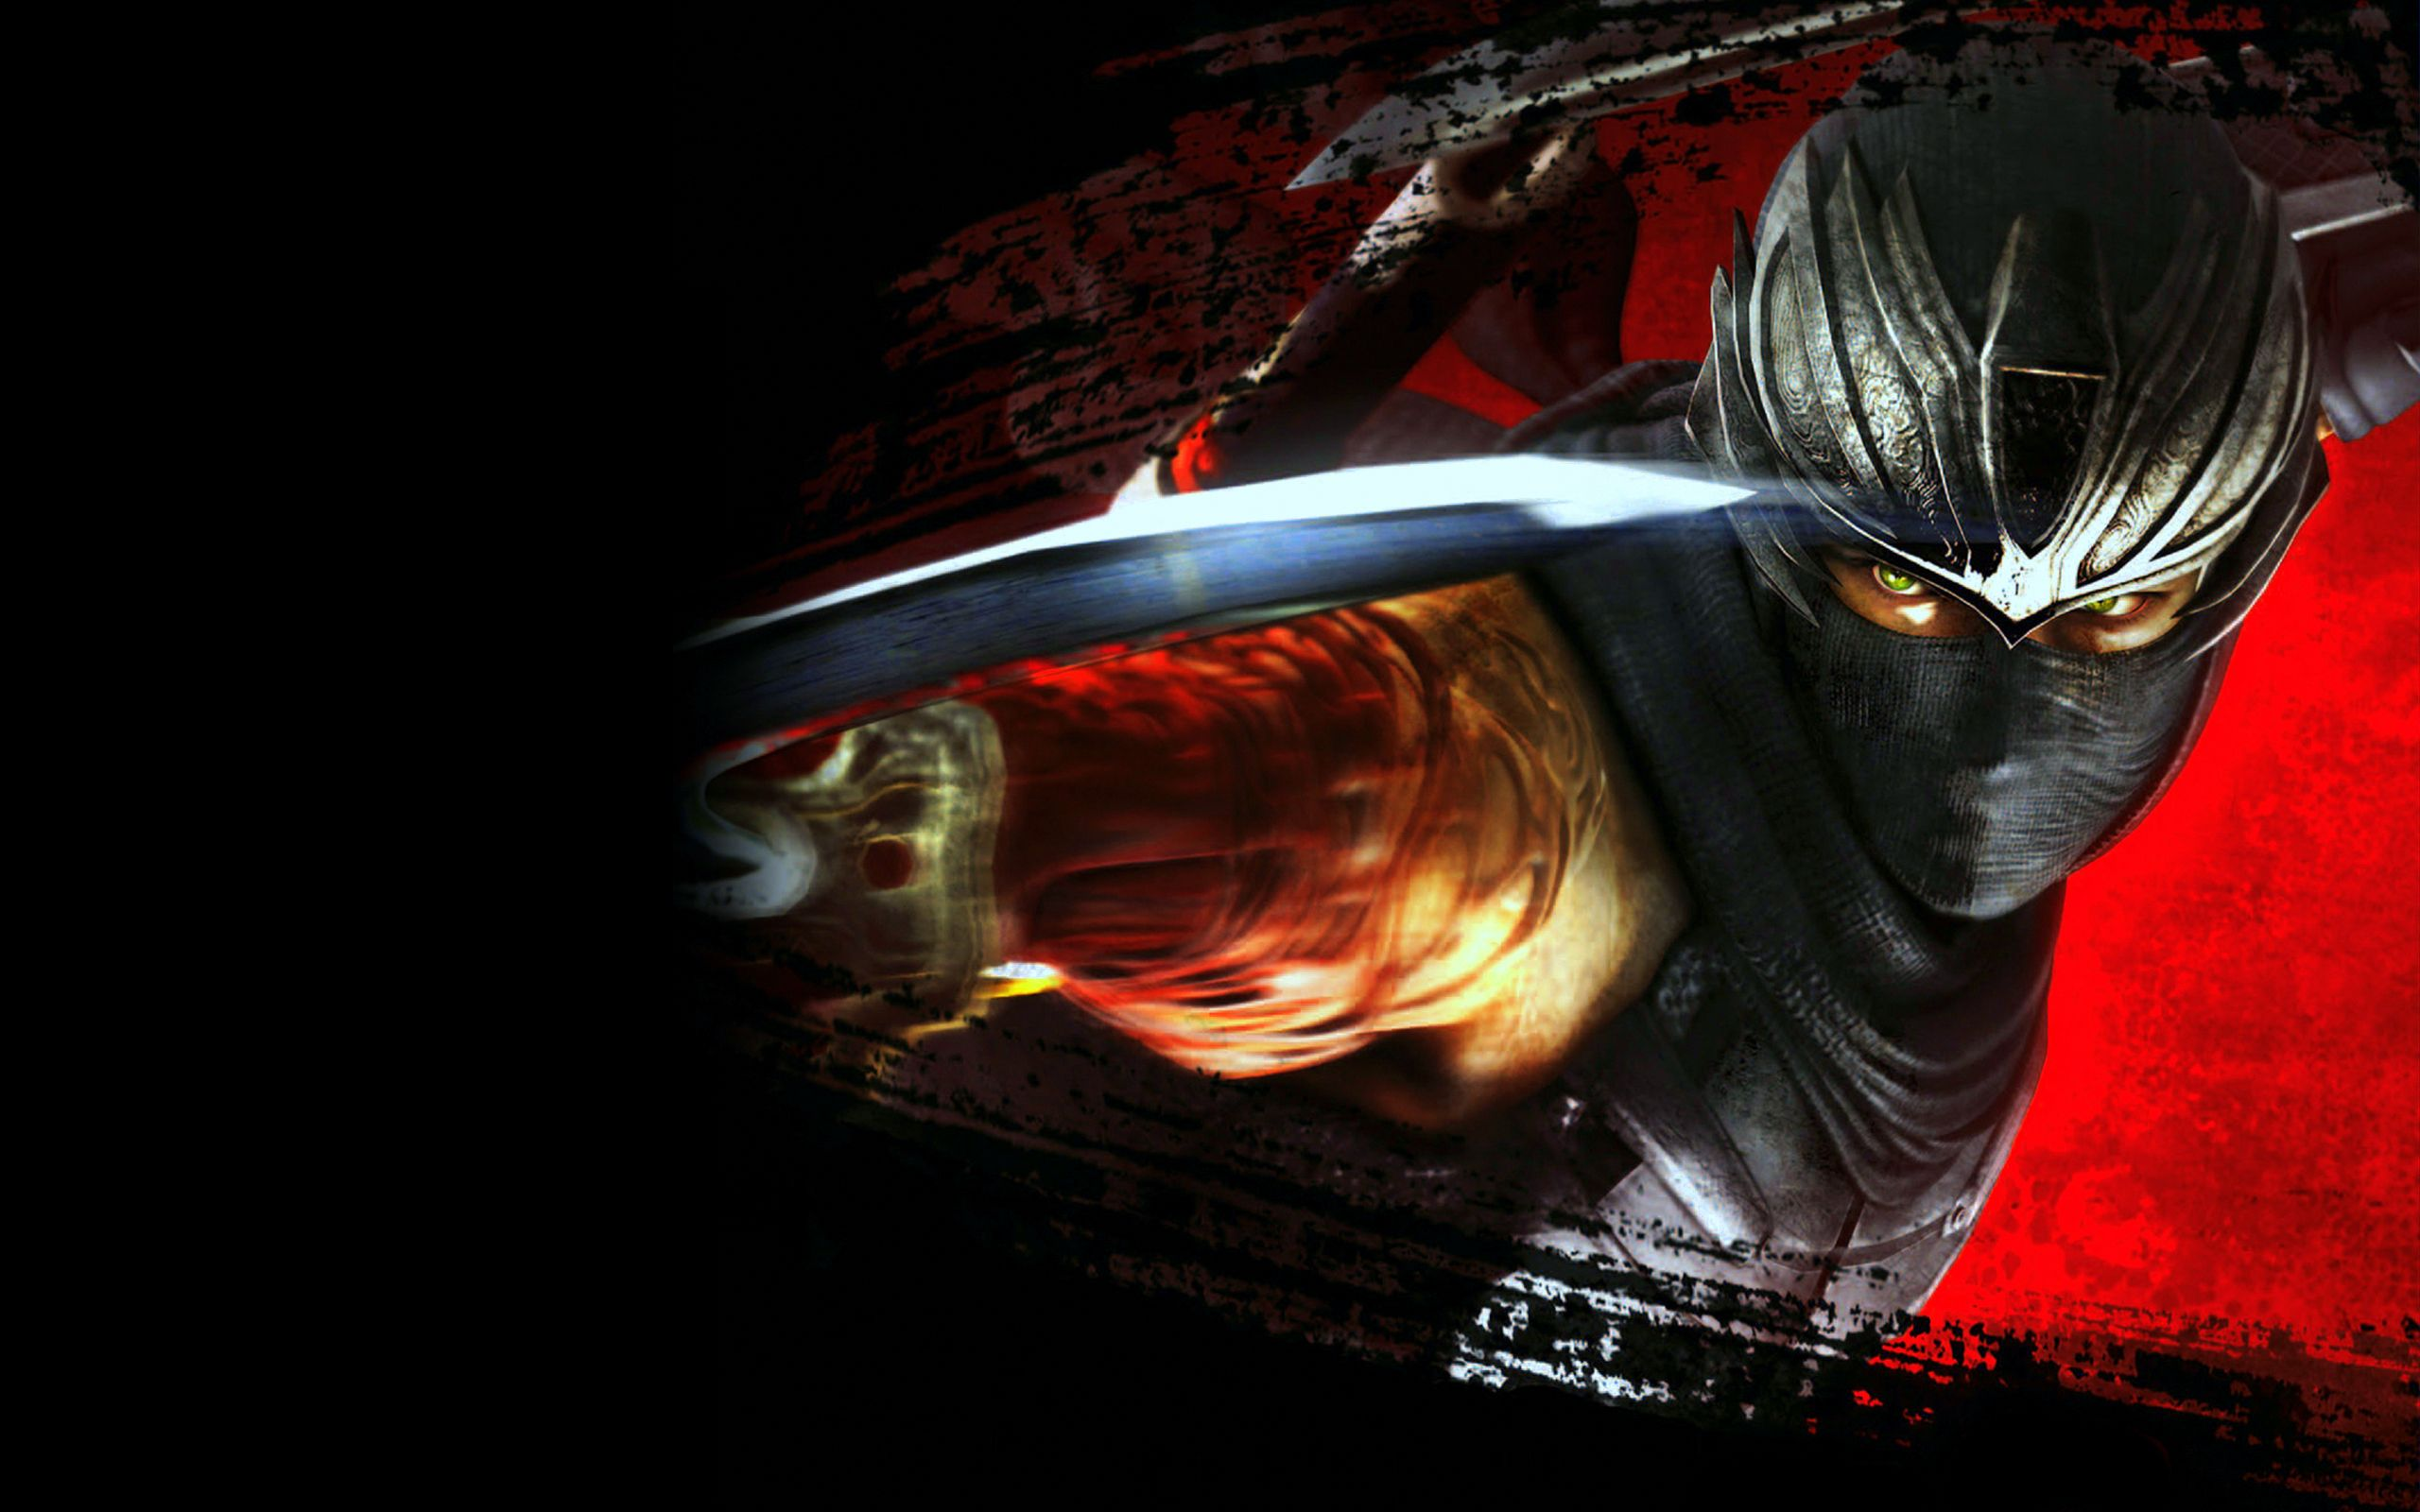 8 Ninja Gaiden 3 Razors Edge Hd Wallpapers Backgrounds Co Hinh